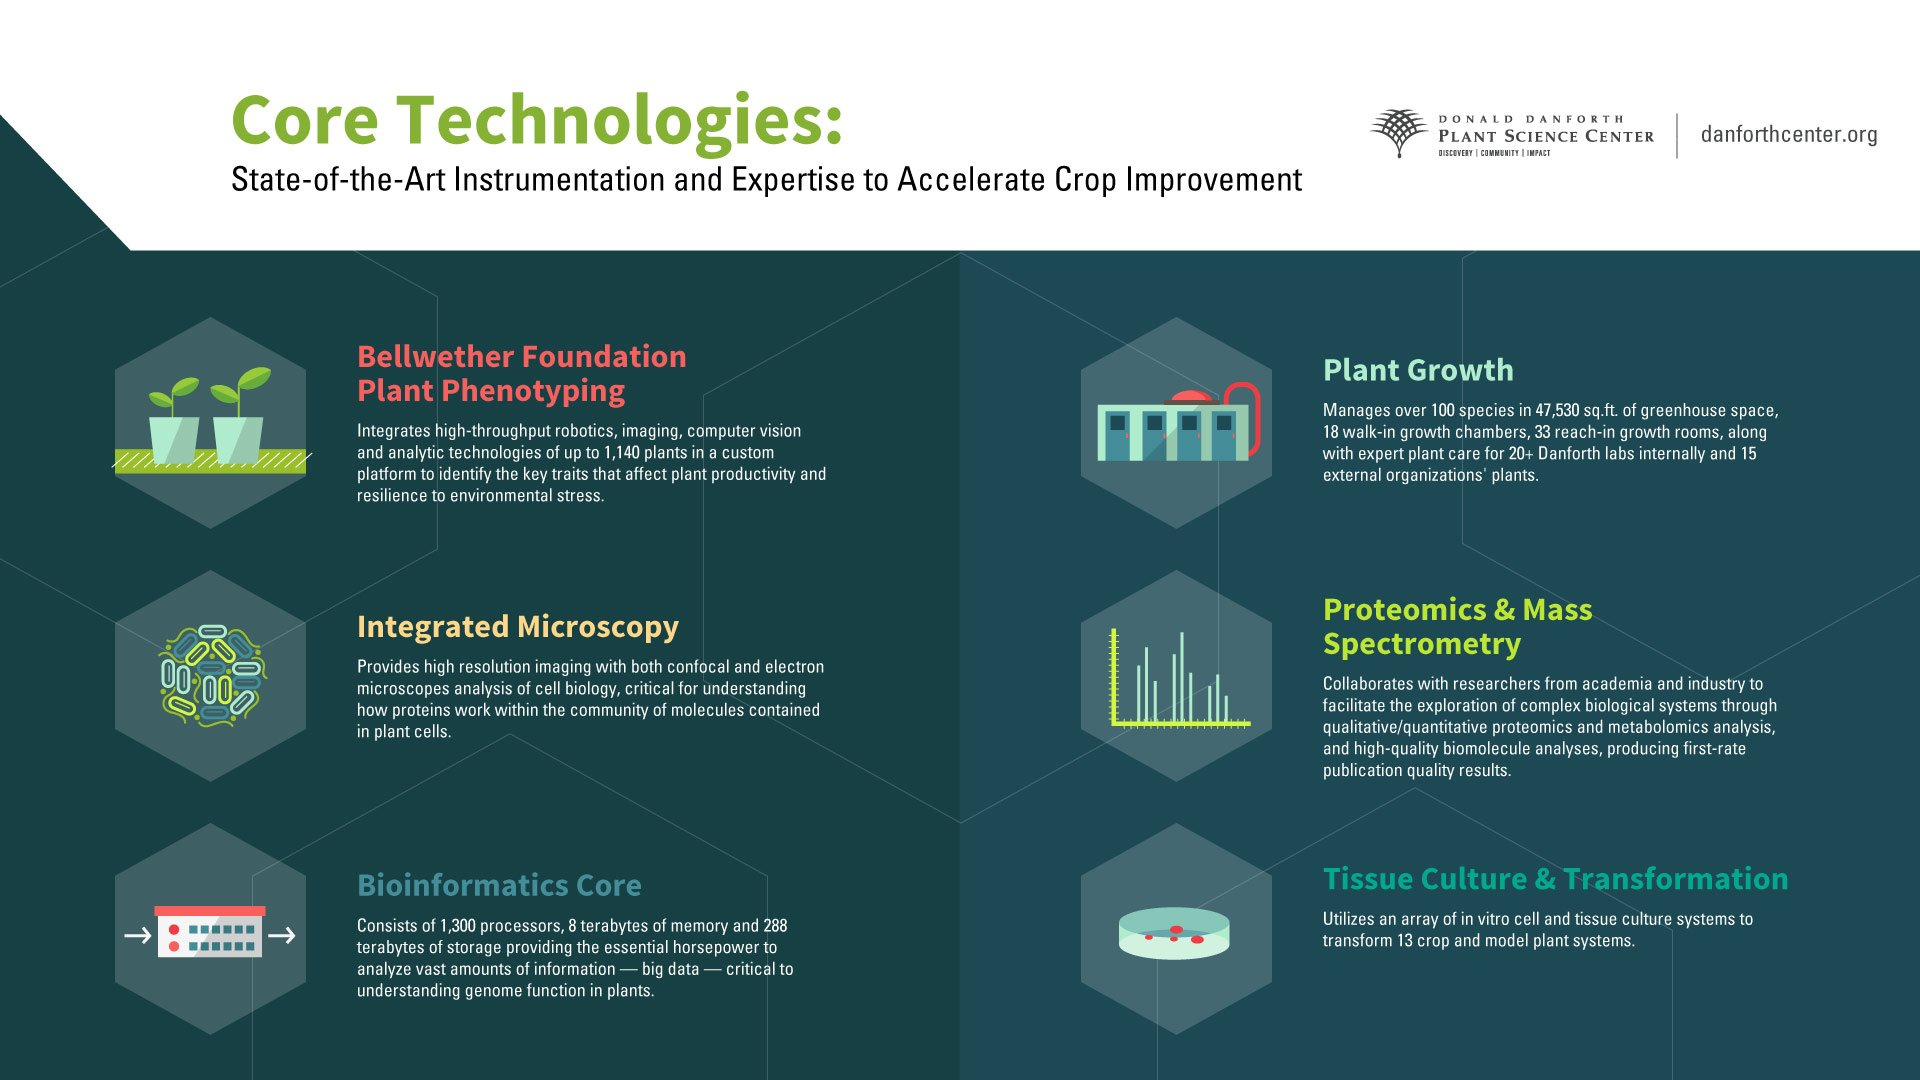 @huotbethany @shyuchris @ThePubClub Learn more about our state-of-the-art core technologies that advance discoveries with our Infographic! #ICAR2017 #plantscience https://t.co/IQ5JhC0Rnz